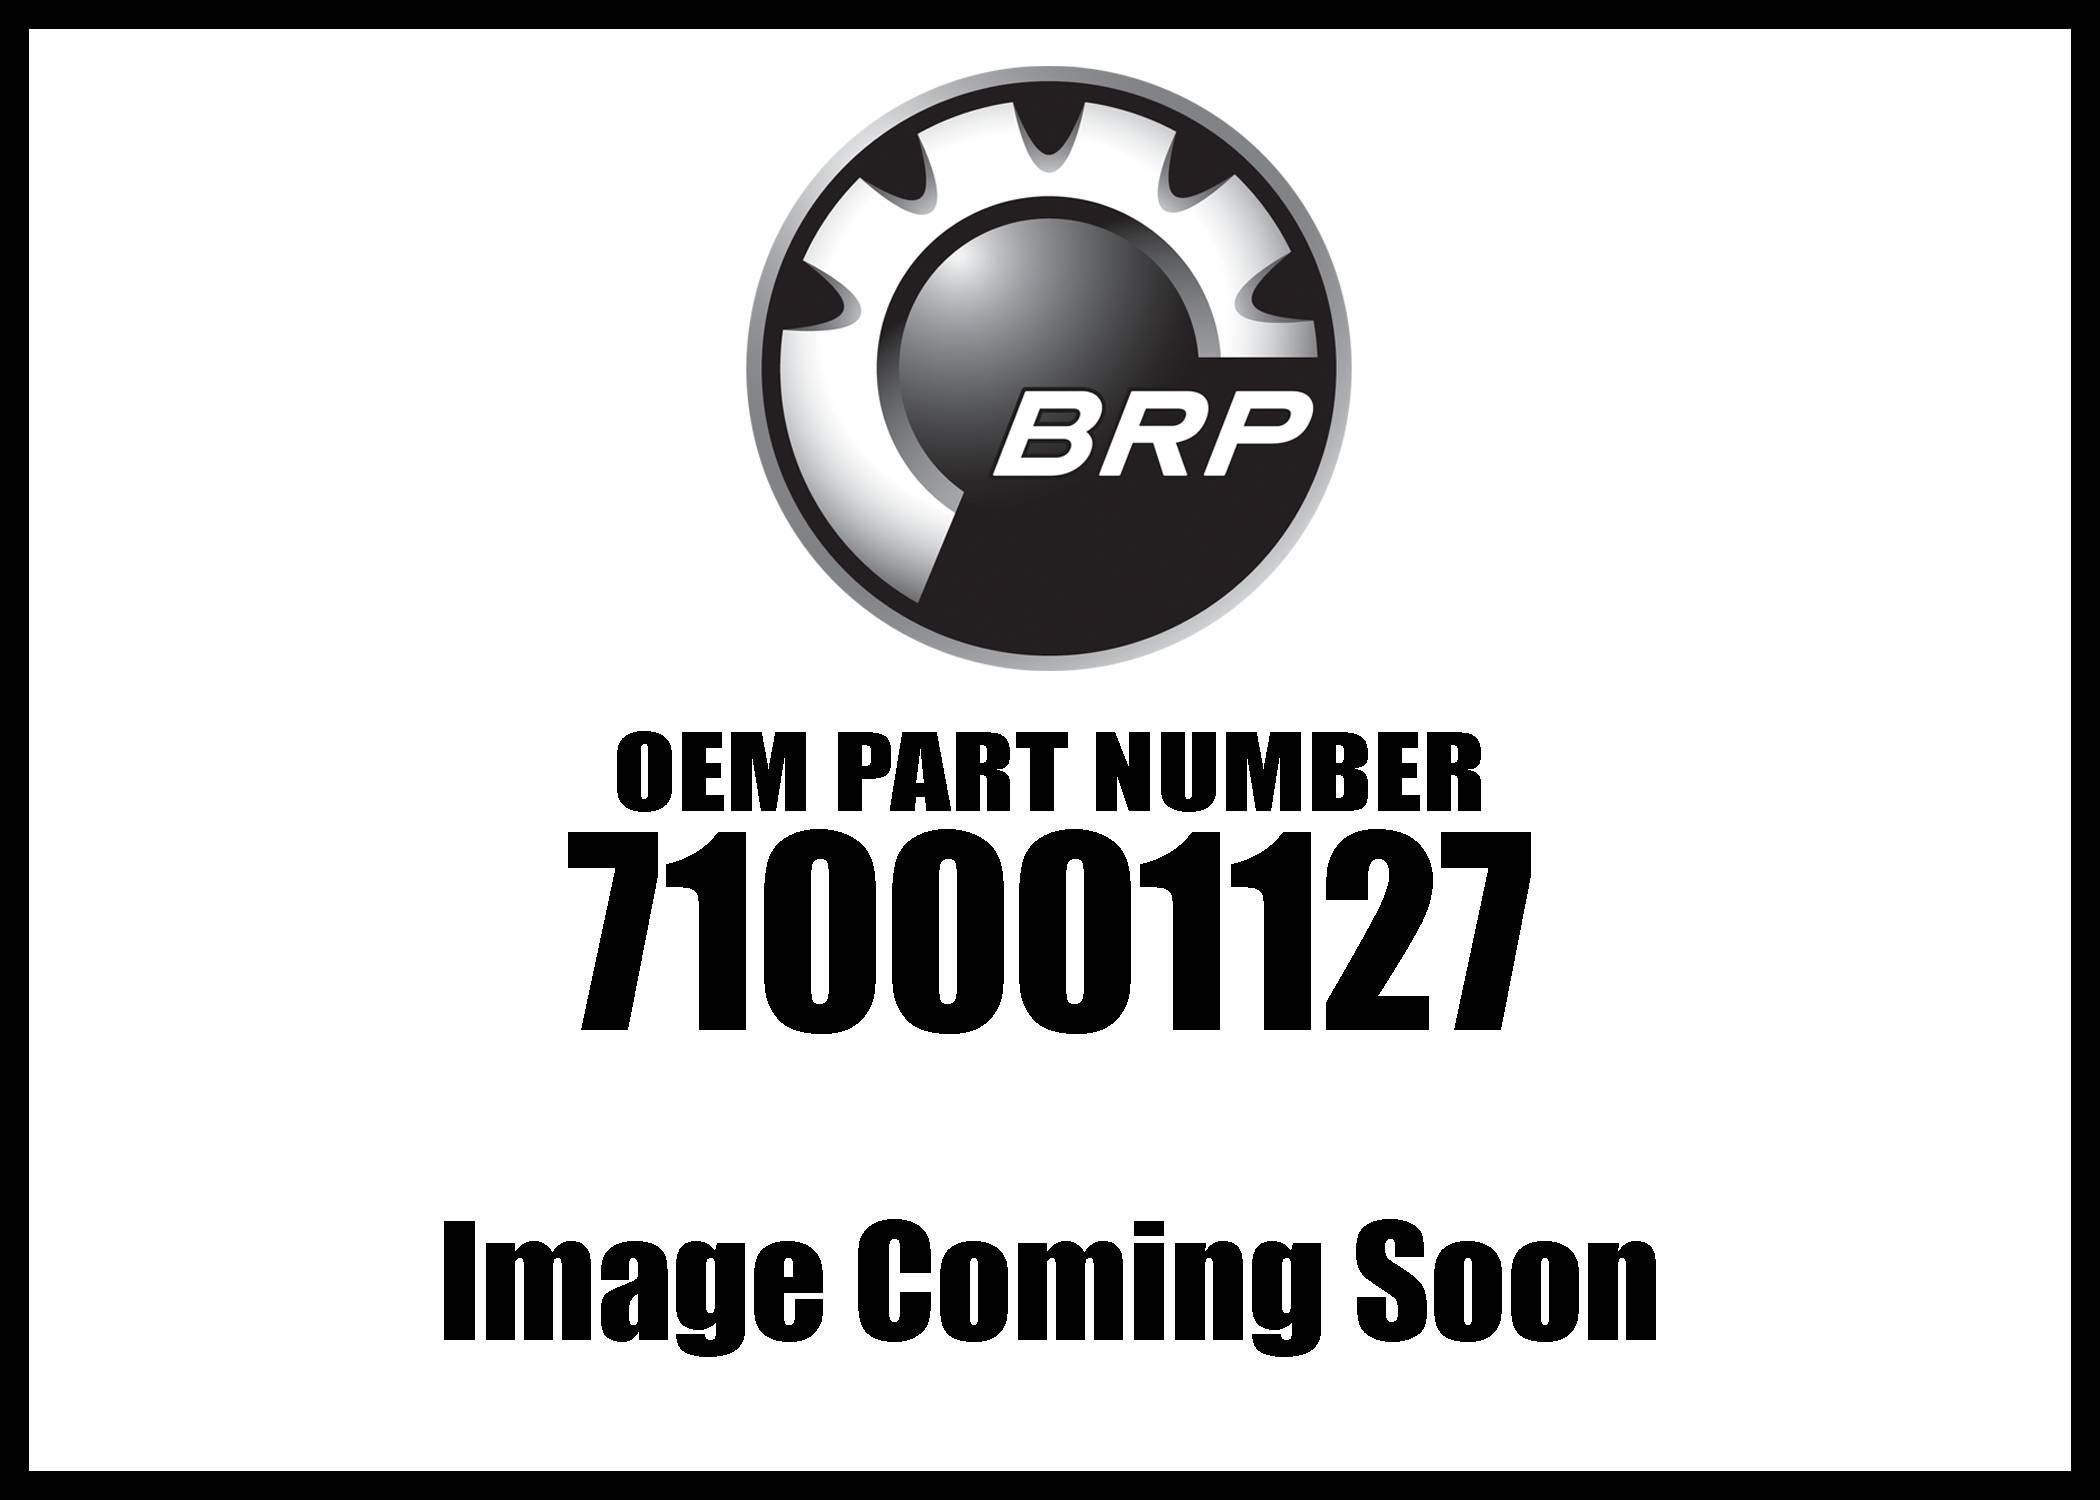 Spyder 2008-2012 Spyder Rs Roadster Se5 Spyder Gs 990 5 Speed Lock 710001127 New Oem